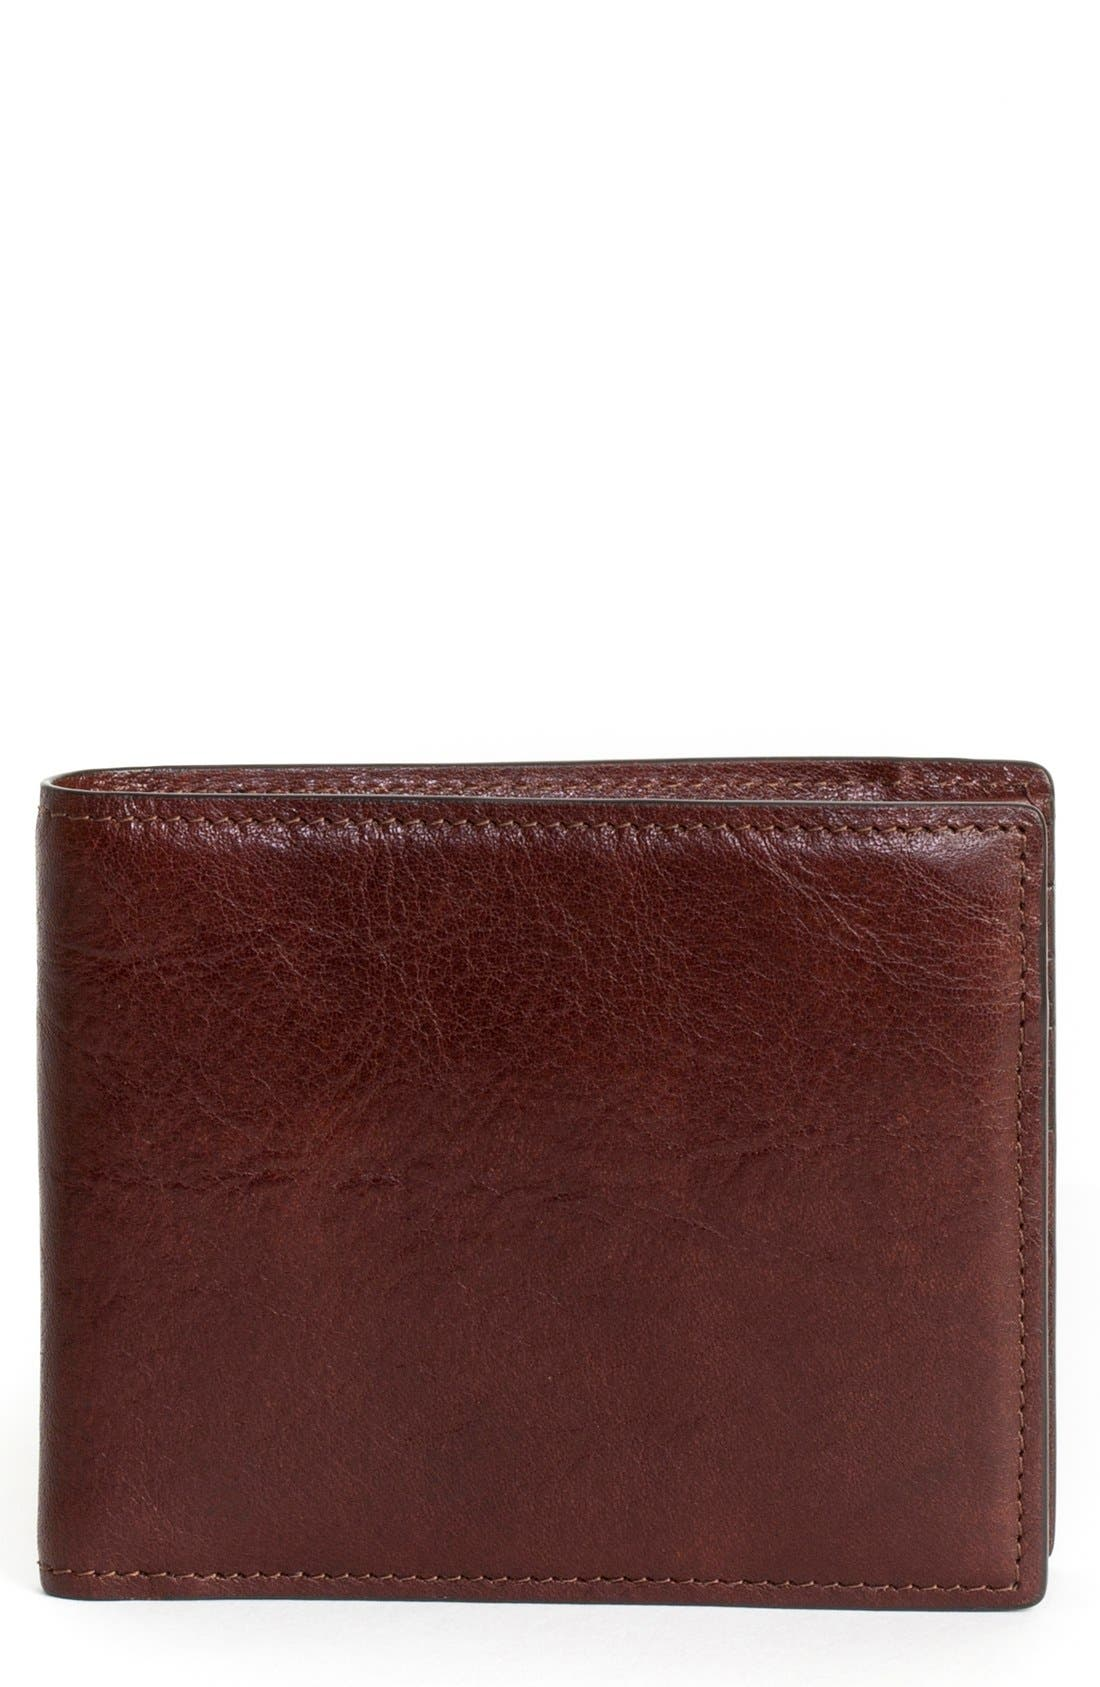 'Becker' Leather Wallet,                             Main thumbnail 1, color,                             Whiskey